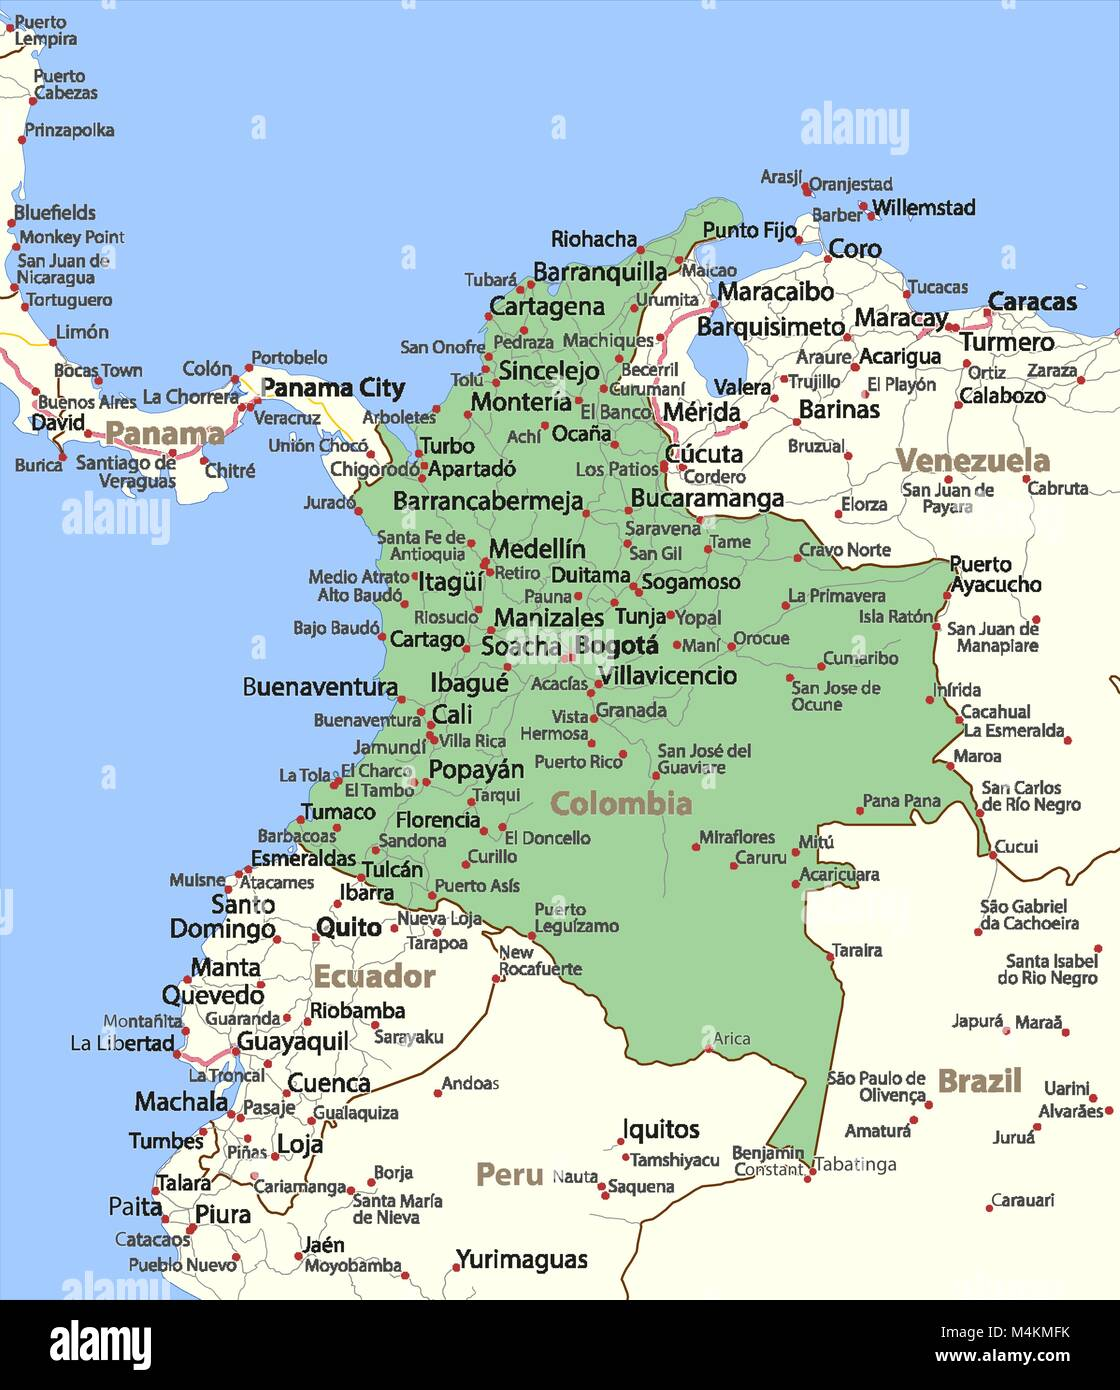 Outline Map Colombia Stock Photos Outline Map Colombia Stock - Paita map